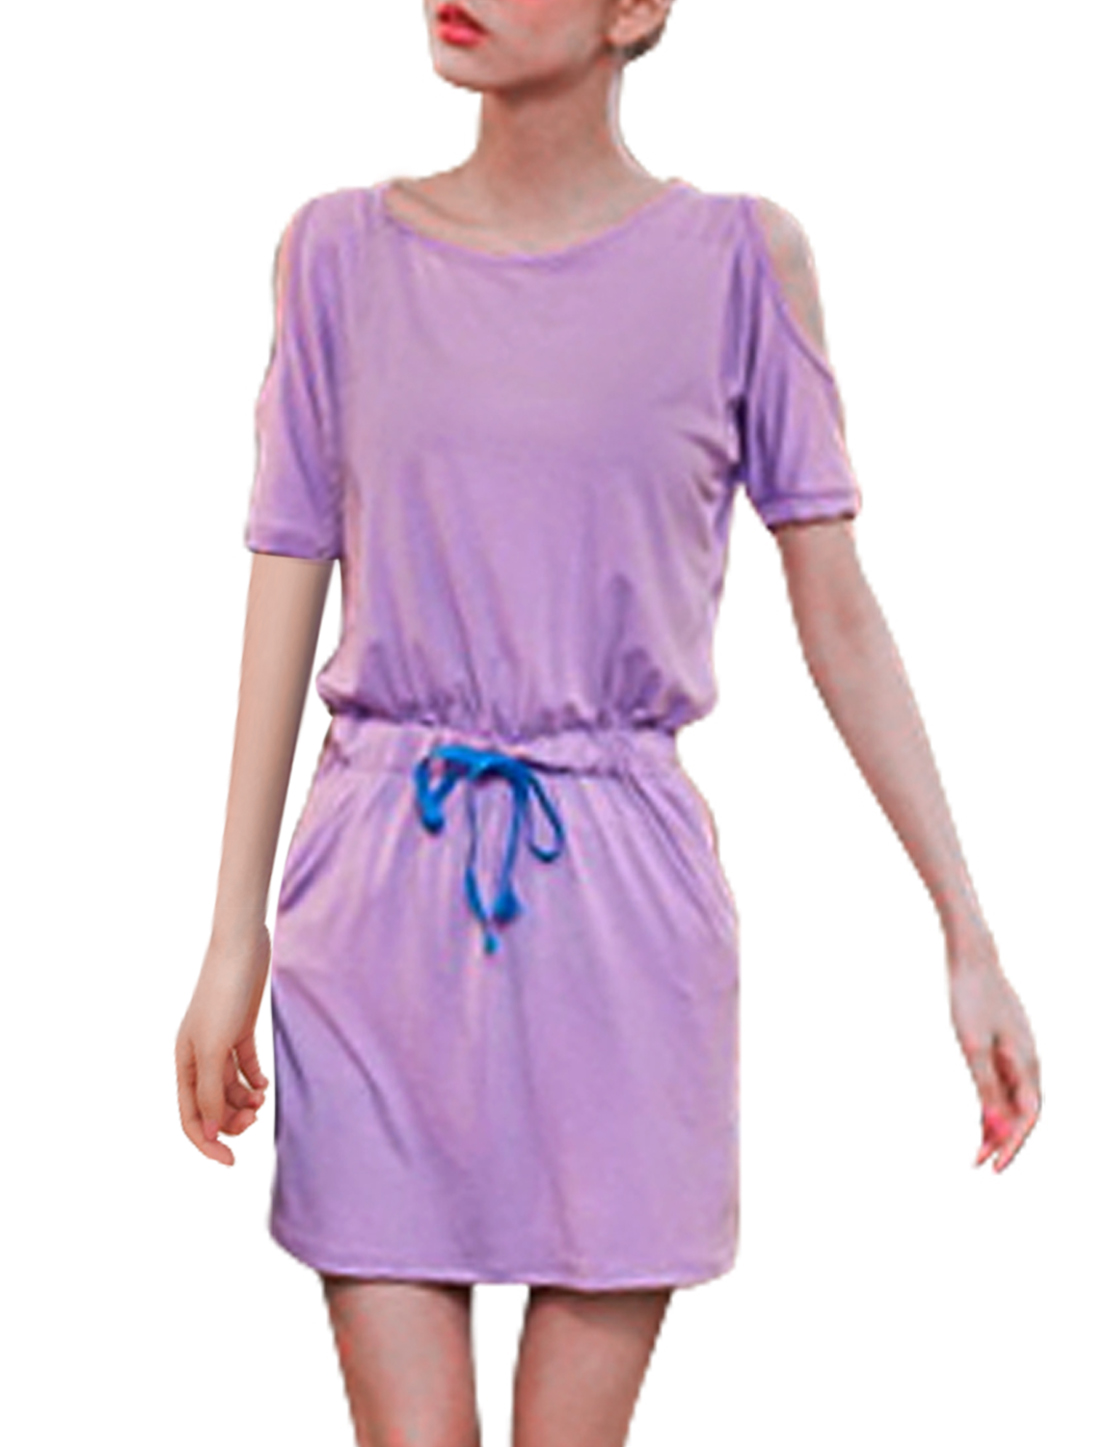 Women Round Neck Short Dolman Sleeve Cutout Shoulder Lavender Mini Dress S